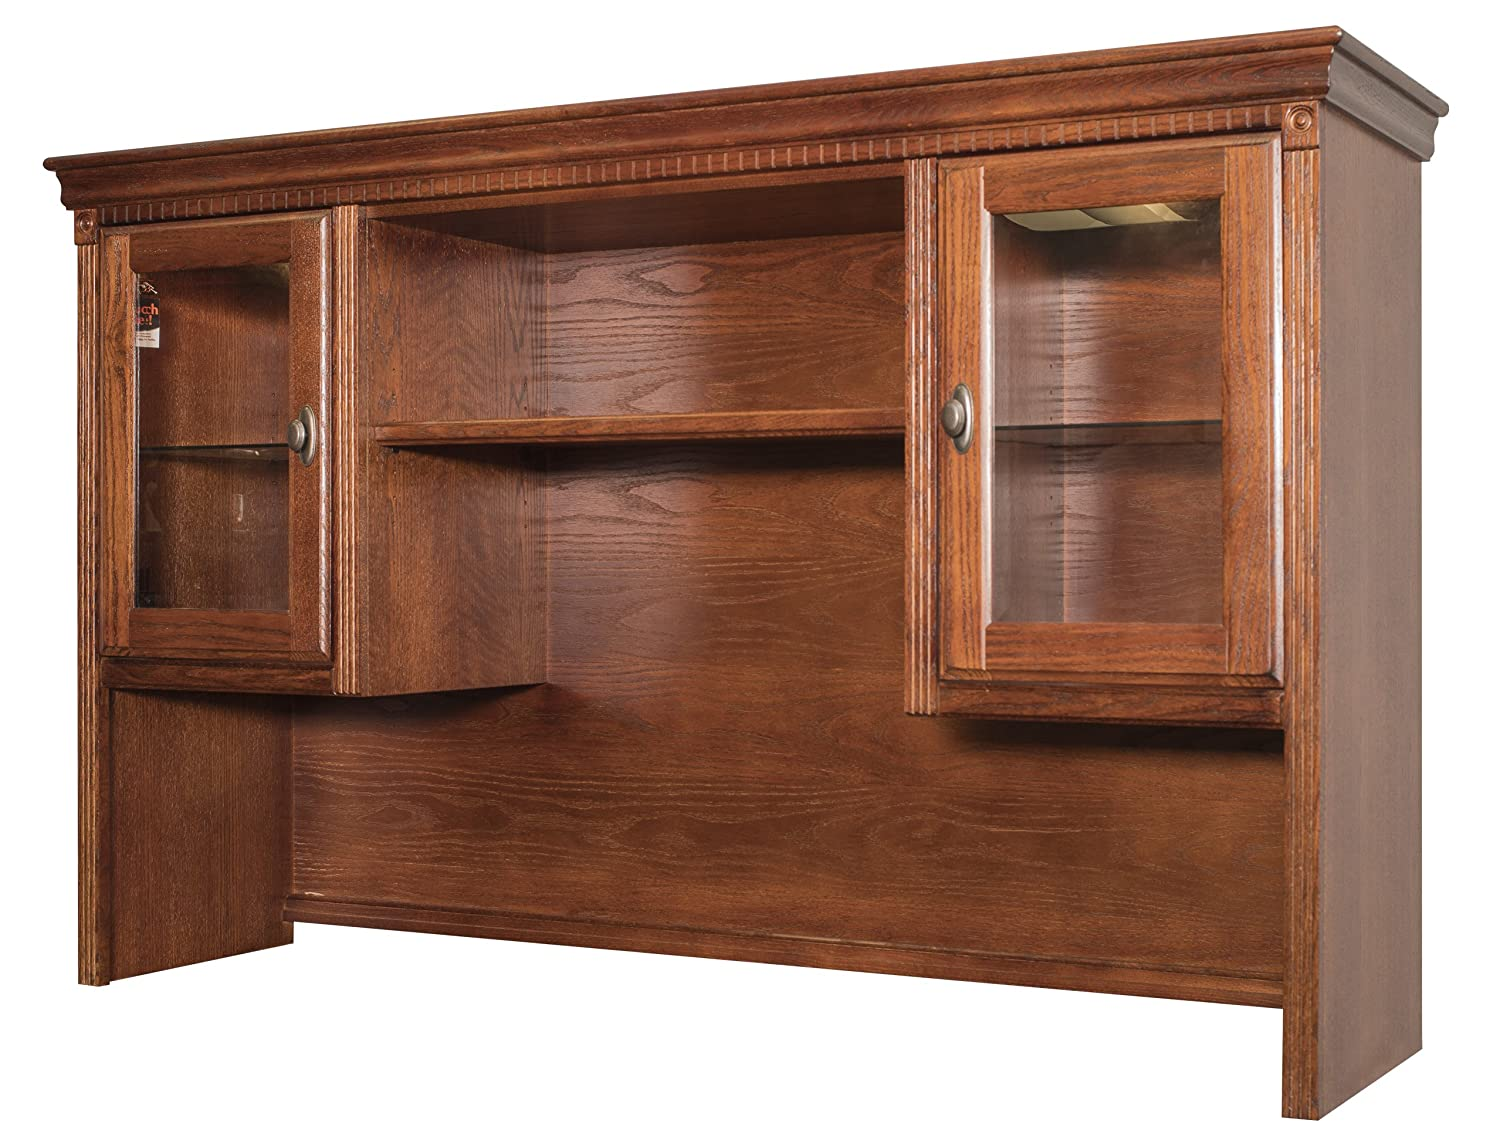 Kathy Ireland Home By Martin Huntington Oxford Storage Hutch - Burnish Finish - Fully Assembled